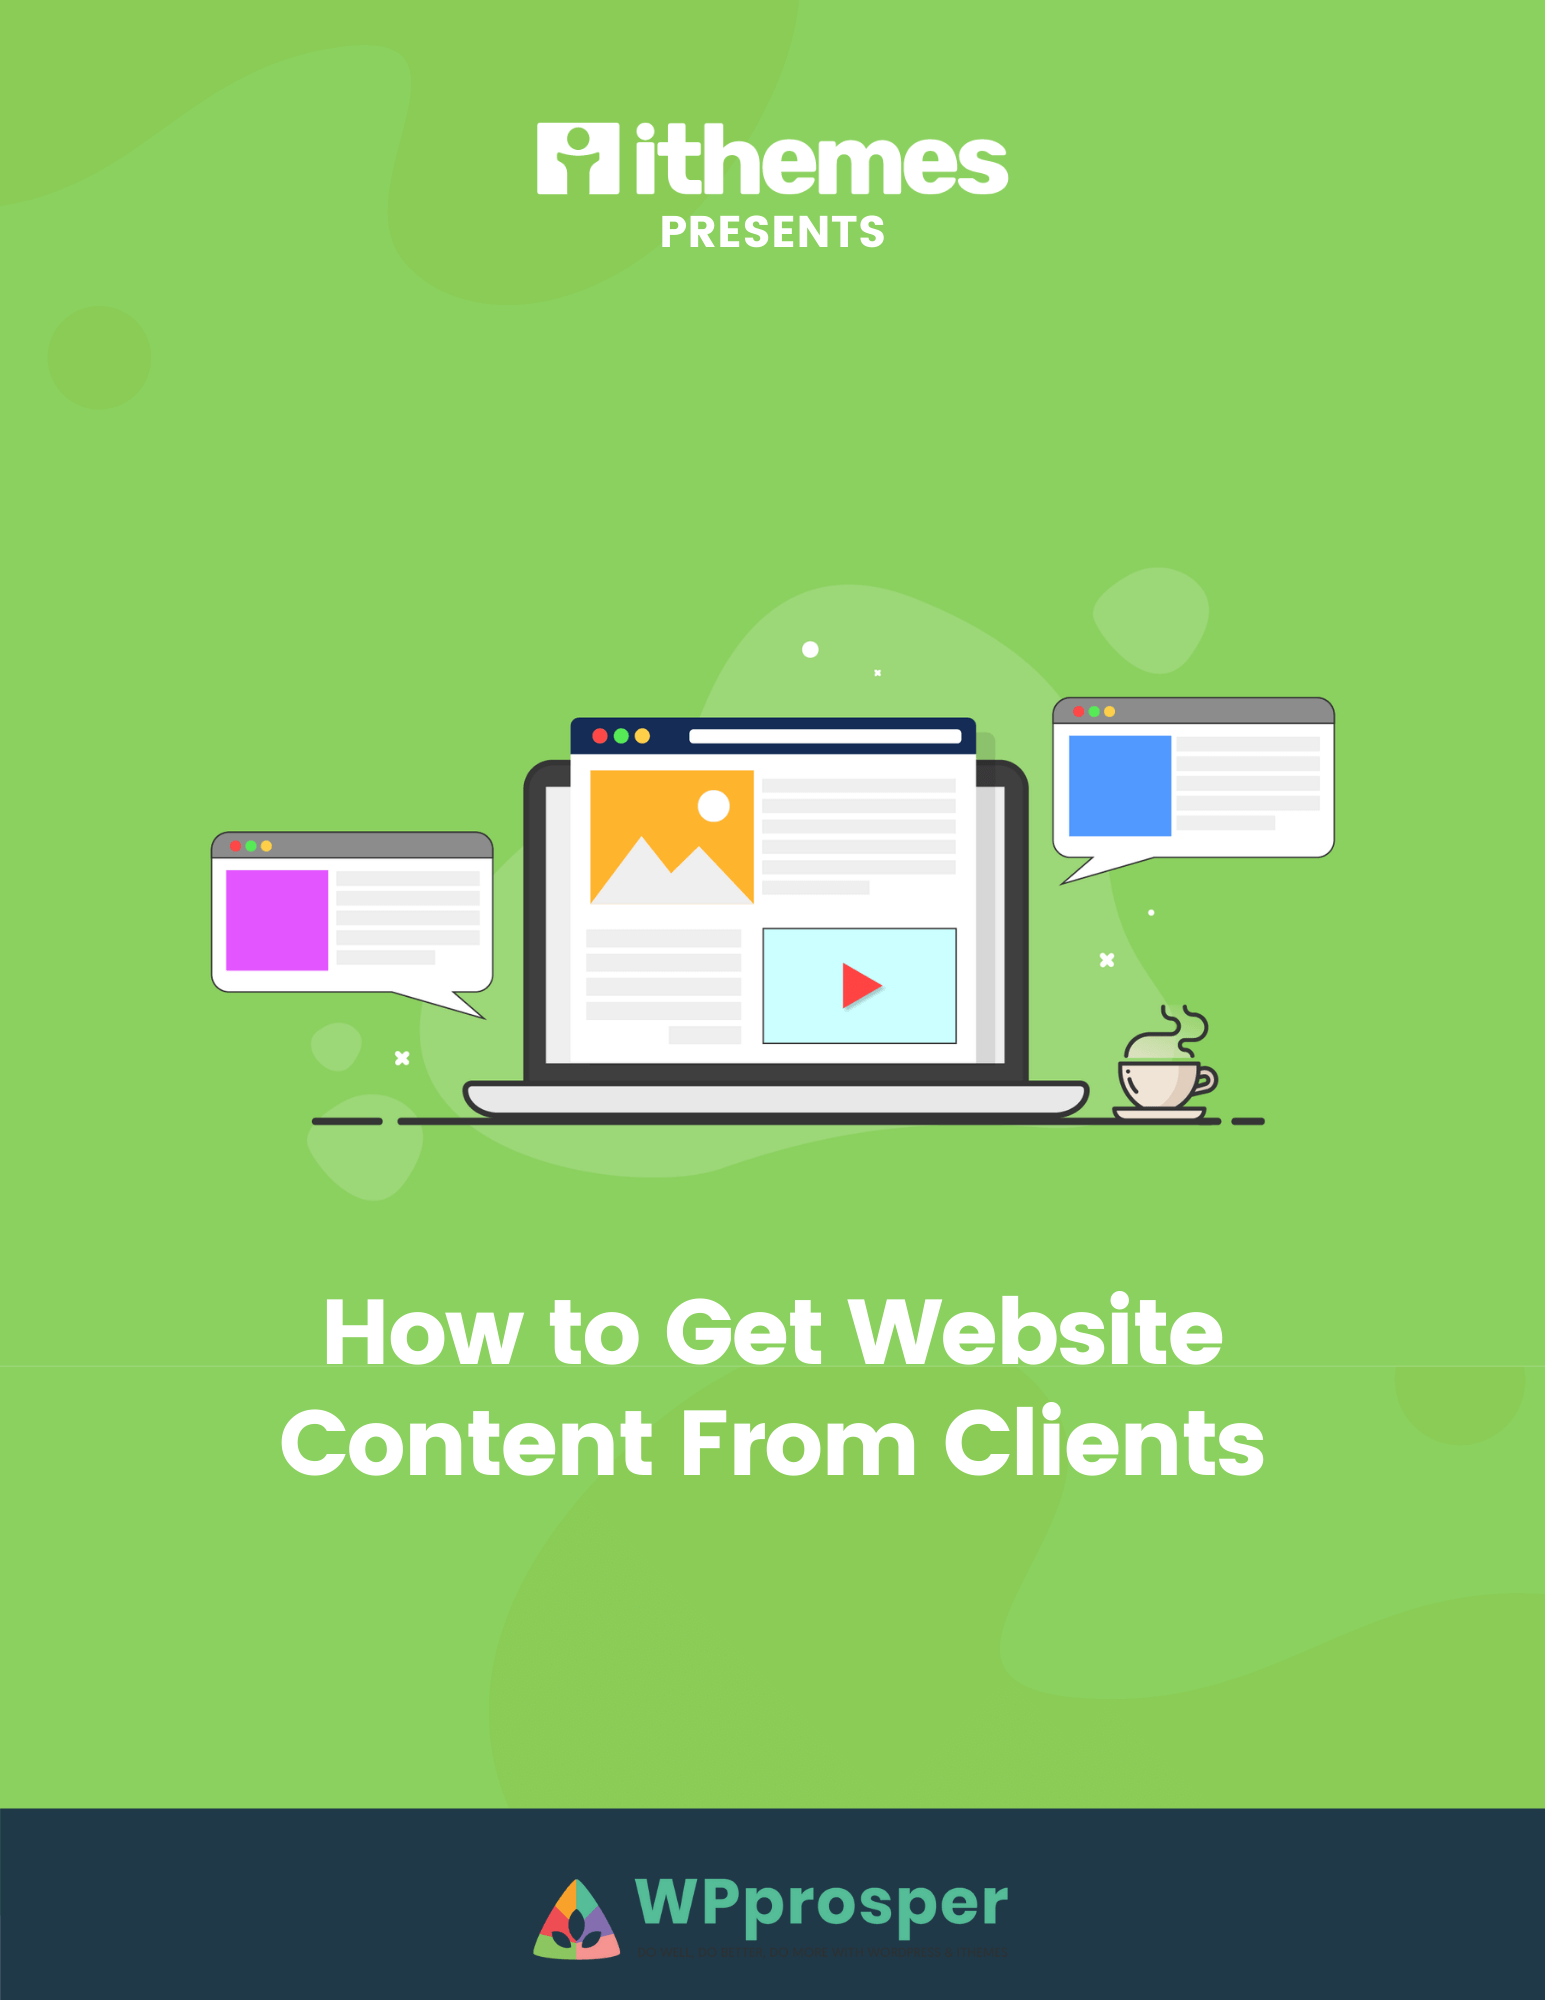 Get Website Content From Clients